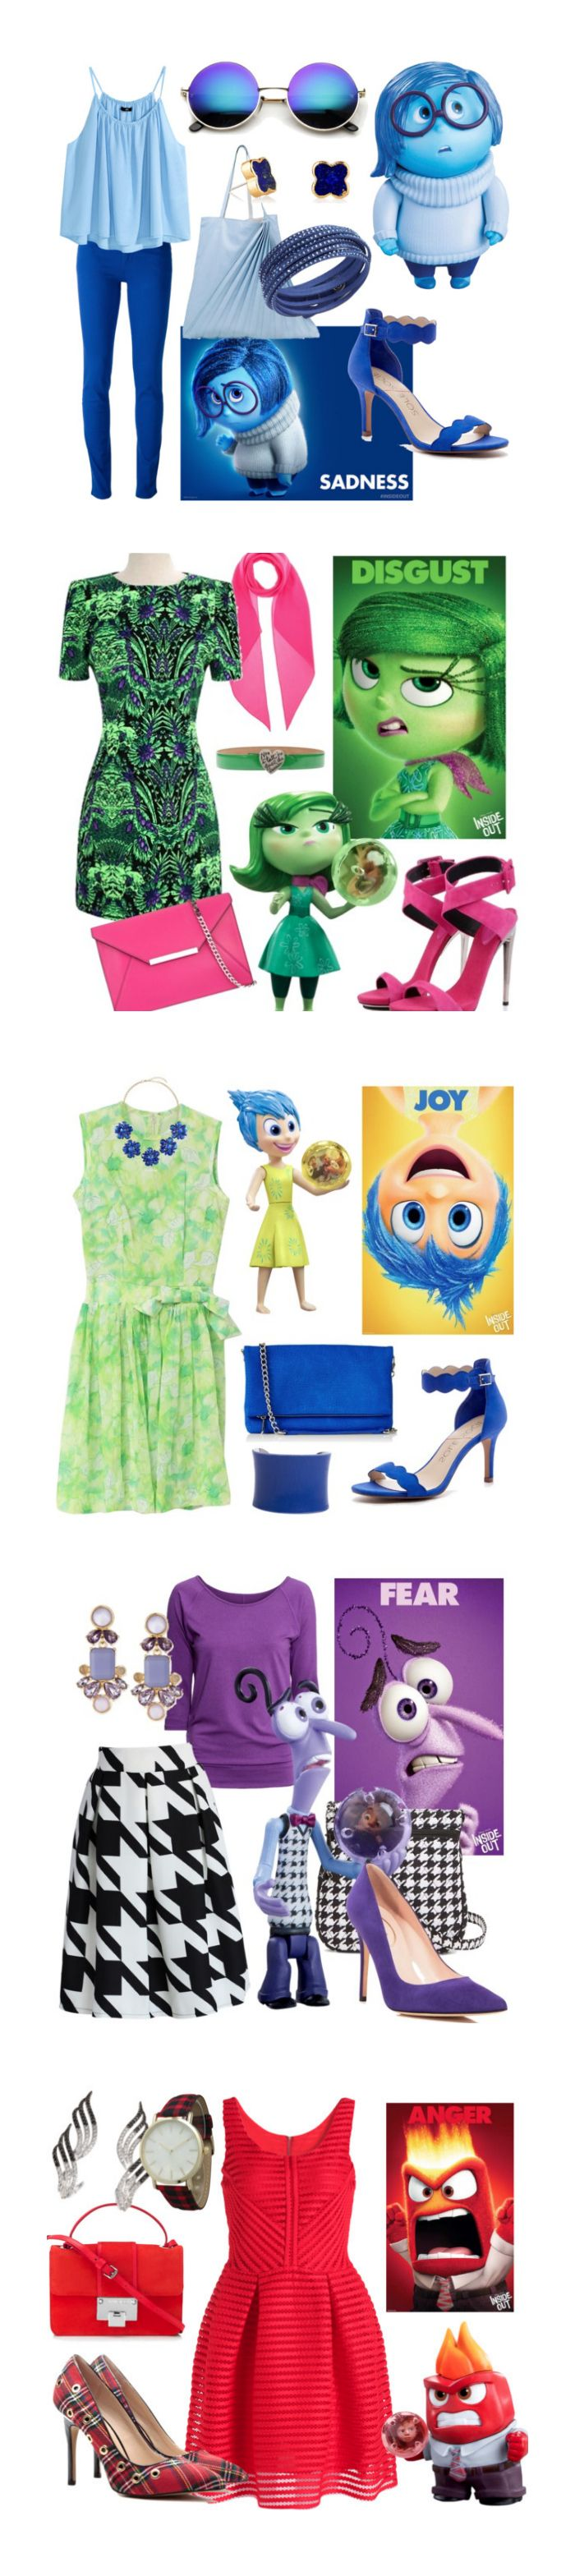 Inside Out Outfits